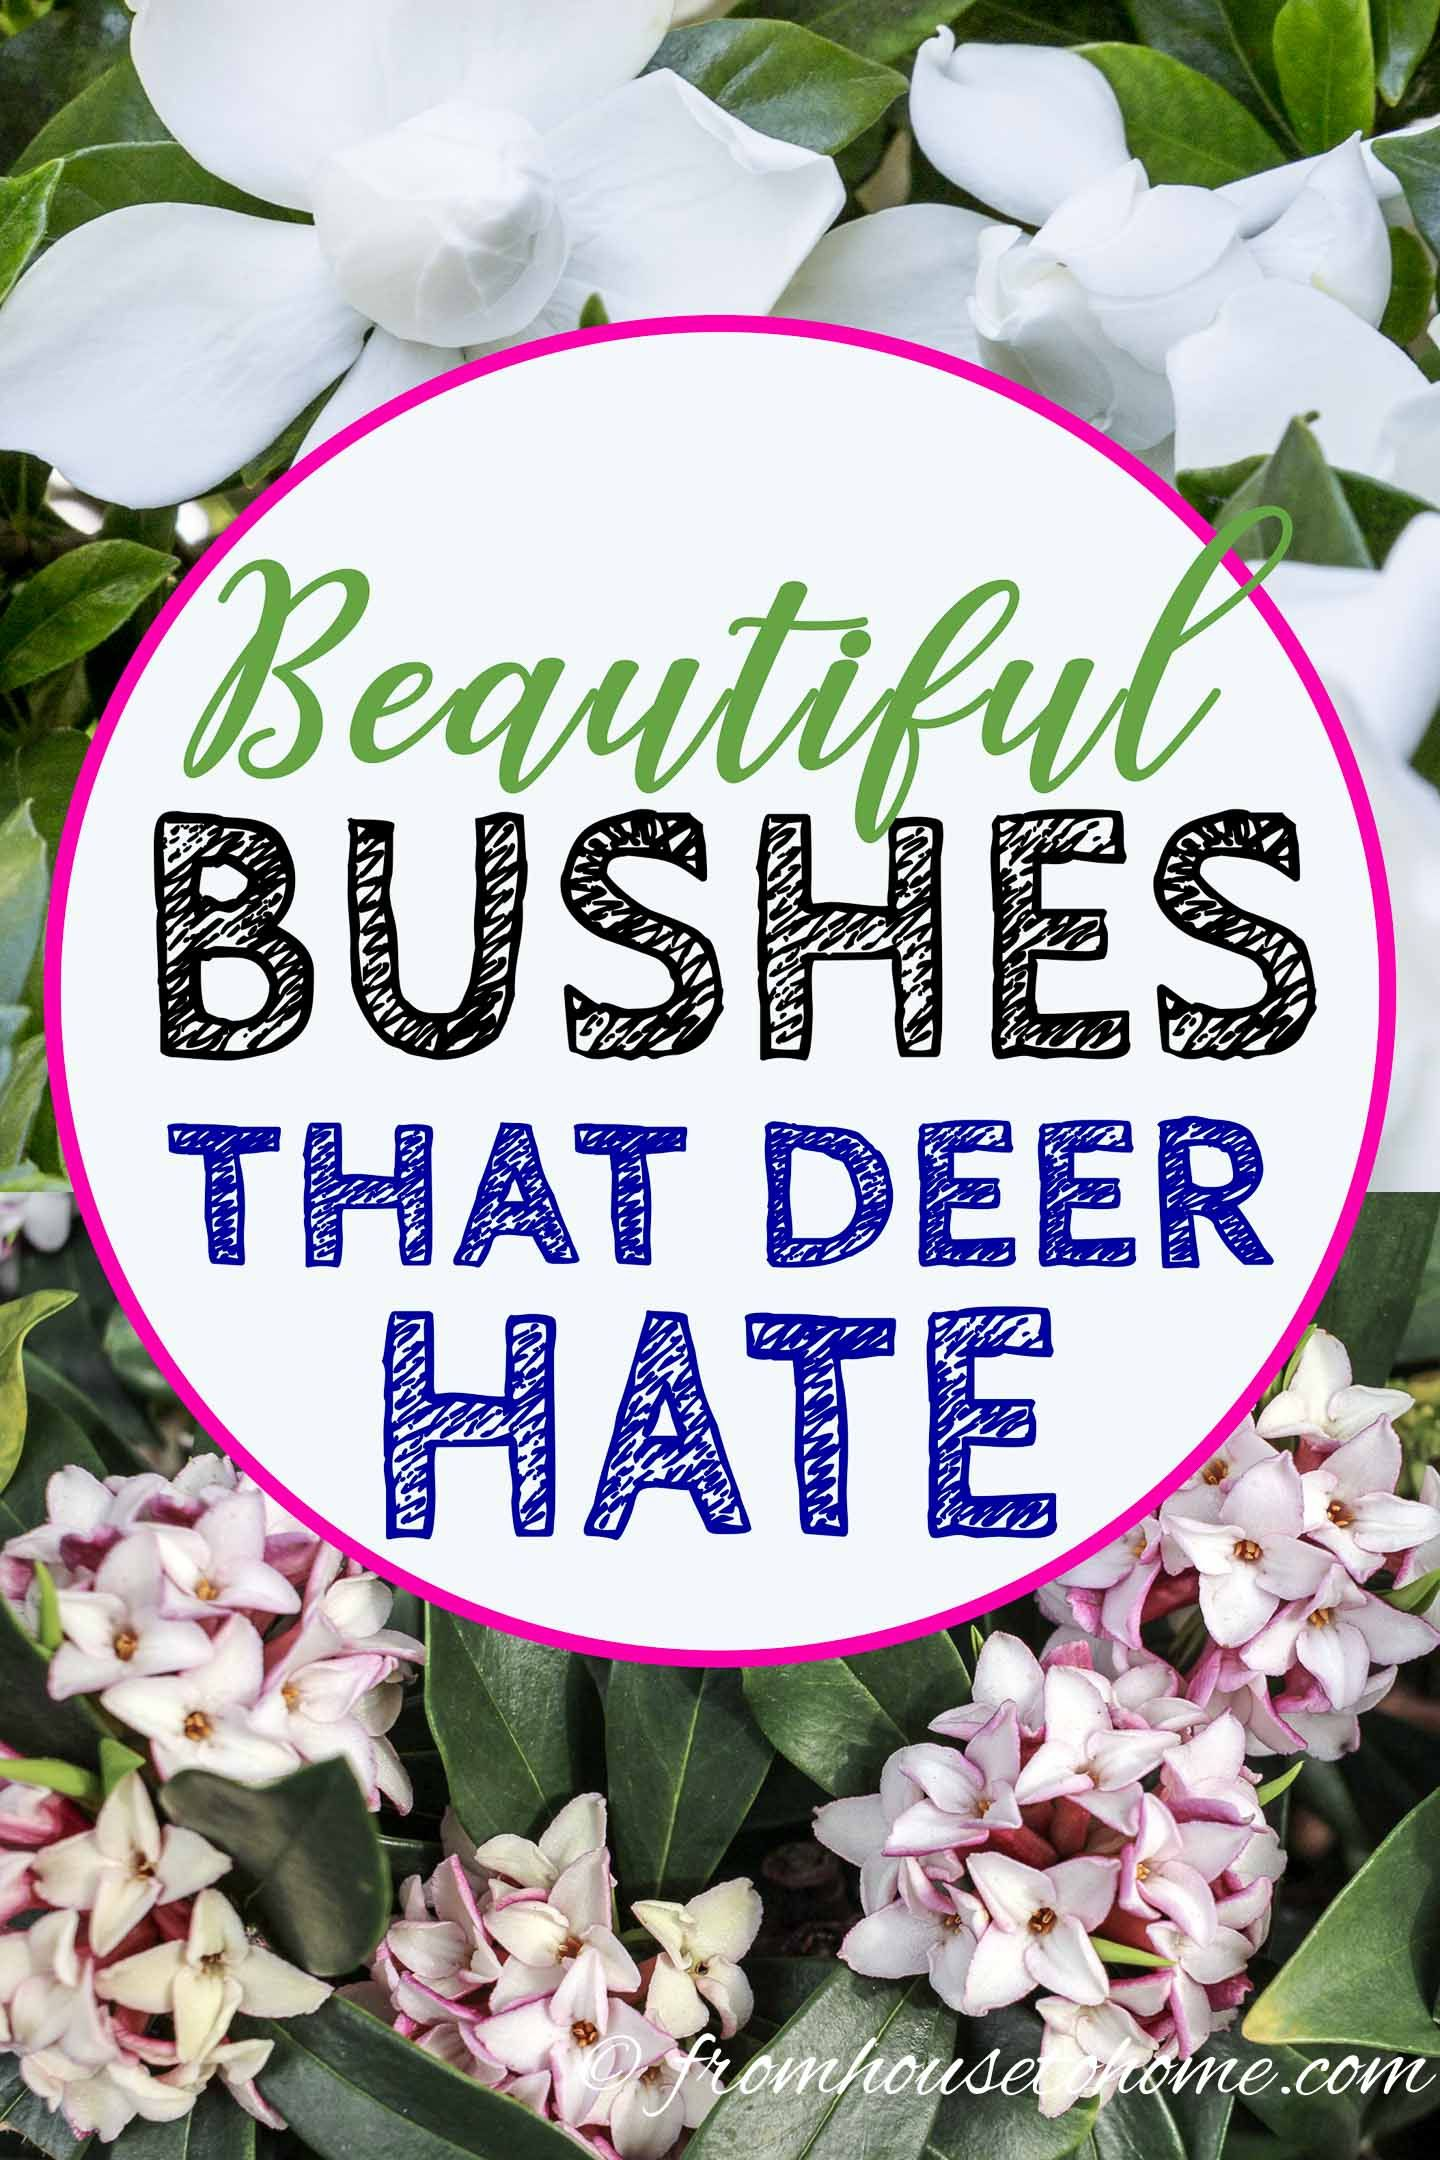 15 Beautiful Deer Resistant Shade Plants To Grow In Your Garden is part of Deer resistant shade plants, Shade shrubs, Shade plants, Deer resistant plants, Deer resistant flowers, Deer resistant perennials - Find out how to keep your garden looking beautiful with these deer resistant shade plants that will help to prevent the animals from dining on your flowers